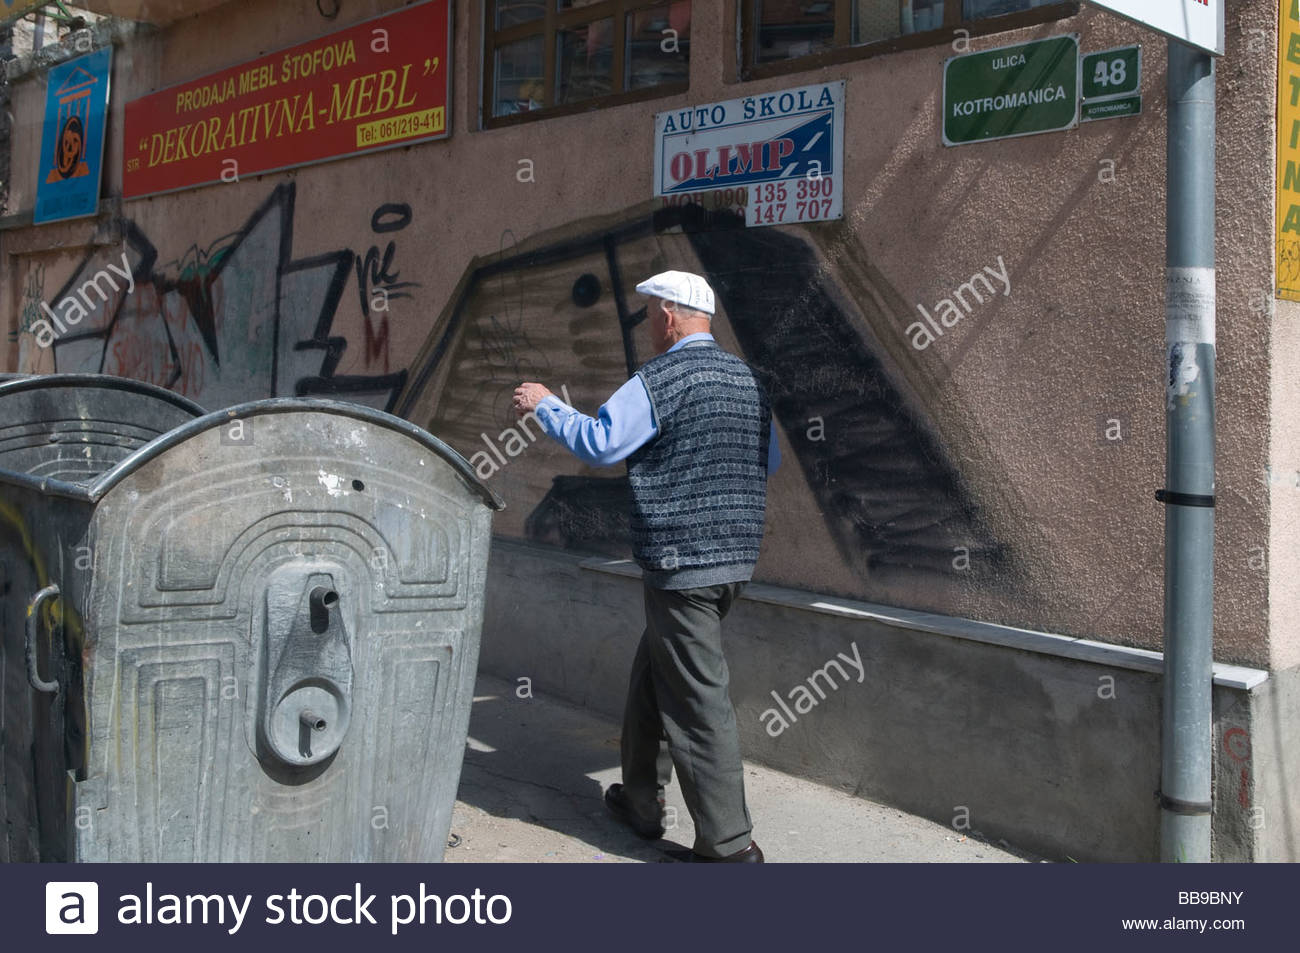 bosnia graffiti stockfotos bosnia graffiti bilder alamy. Black Bedroom Furniture Sets. Home Design Ideas